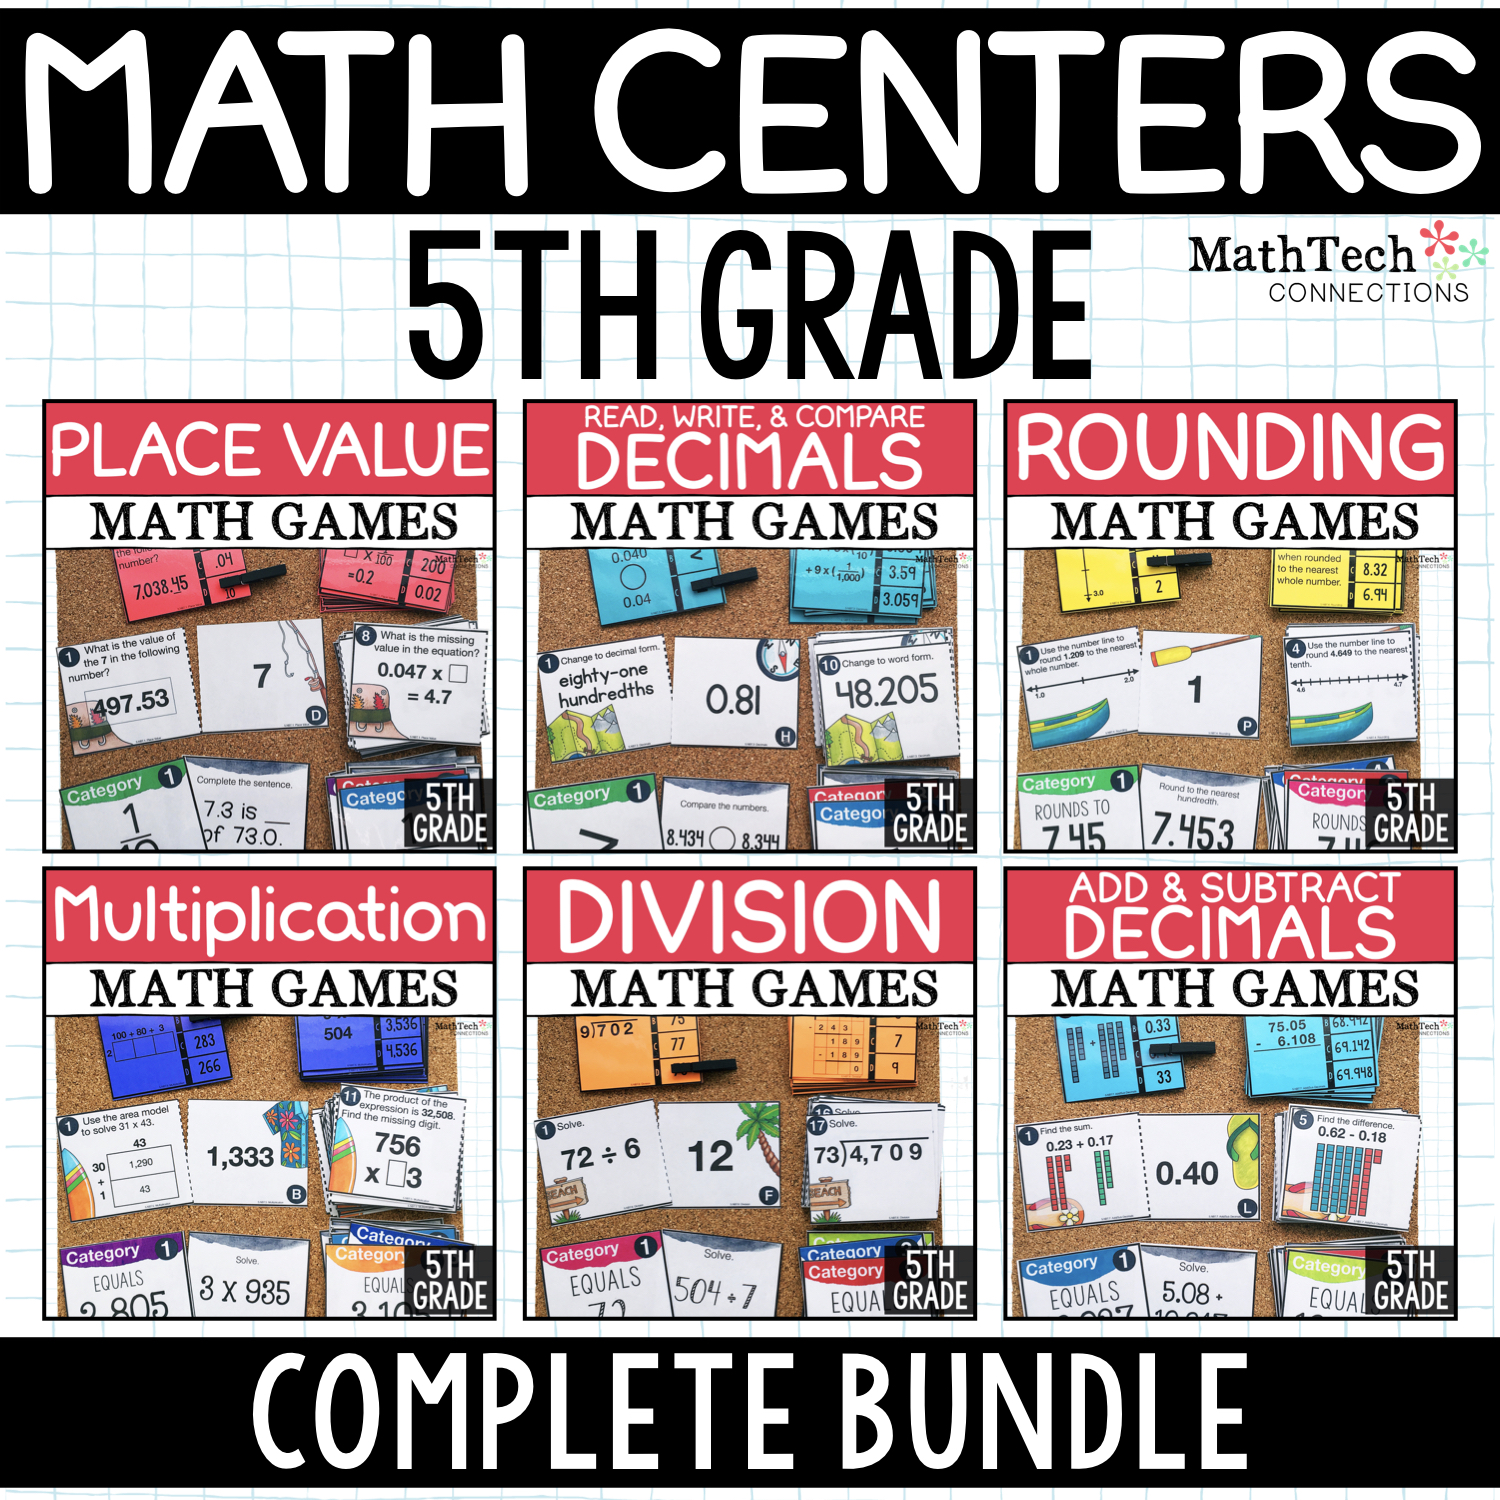 5th Grade Math Centers for Math Workshop - Three math activities for fifth grade math centers